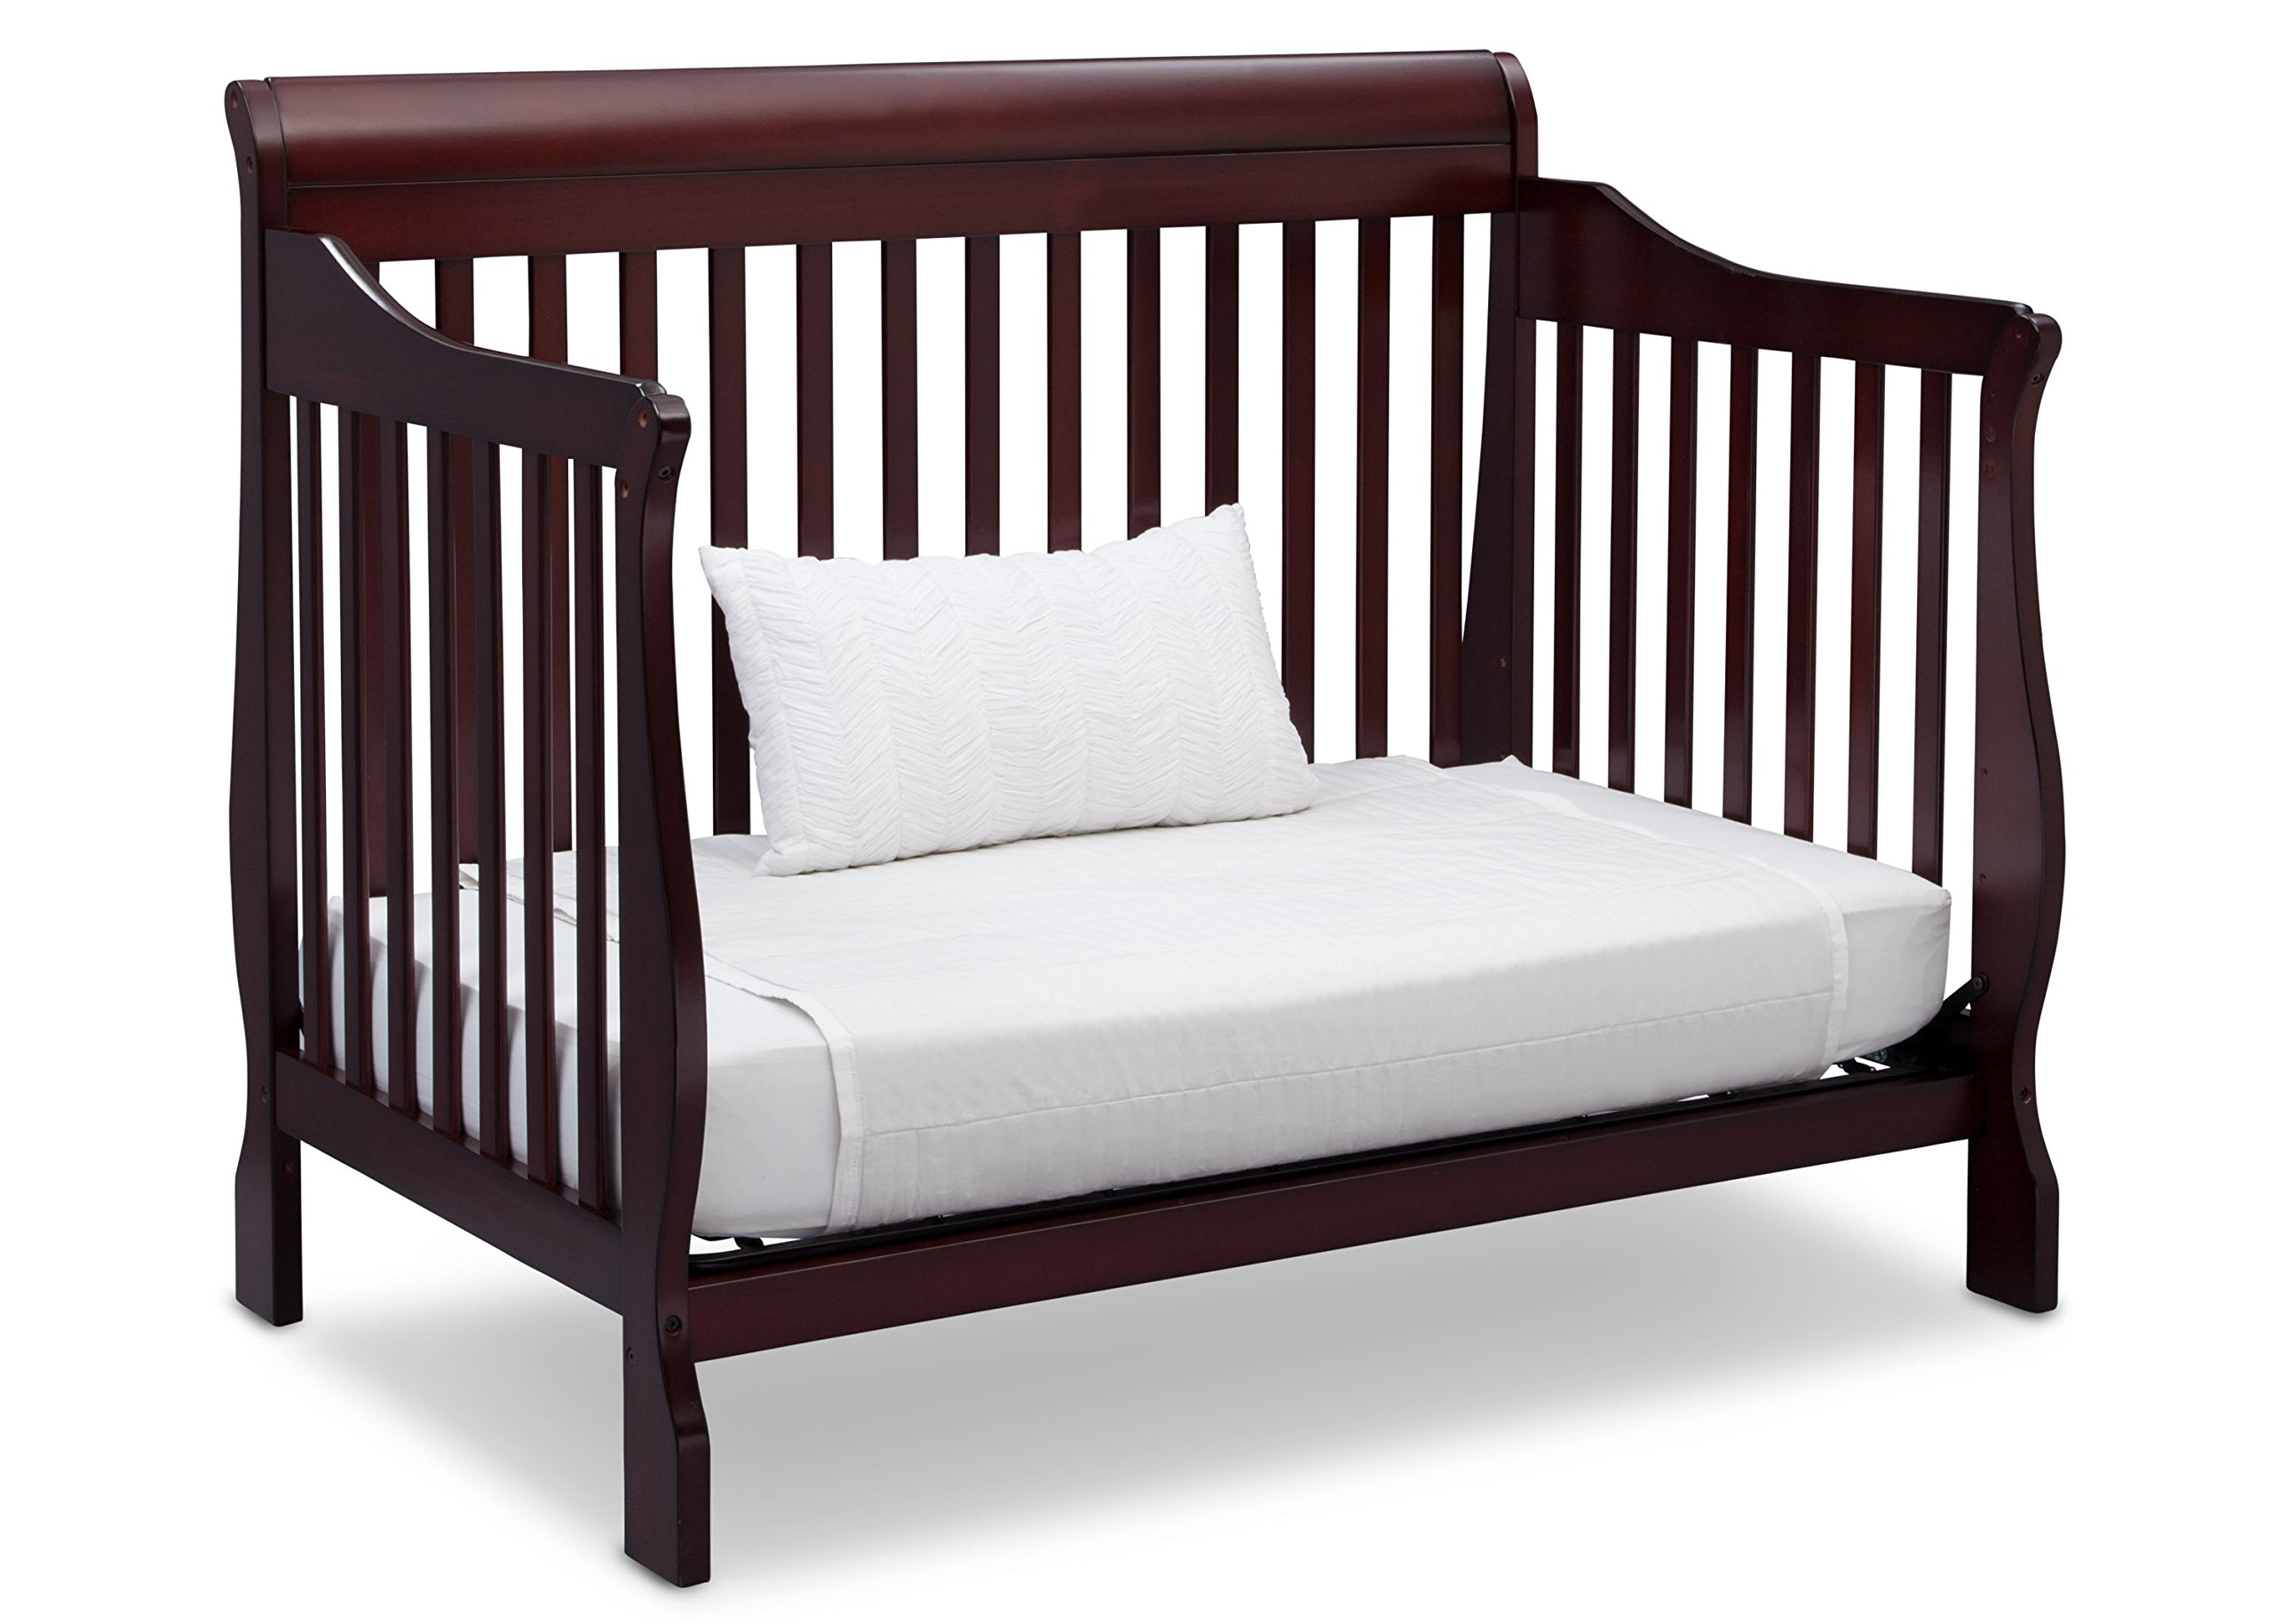 Delta Children Canton 4-in-1 Convertible Crib, Espresso Cherry by Delta Children (Image #6)